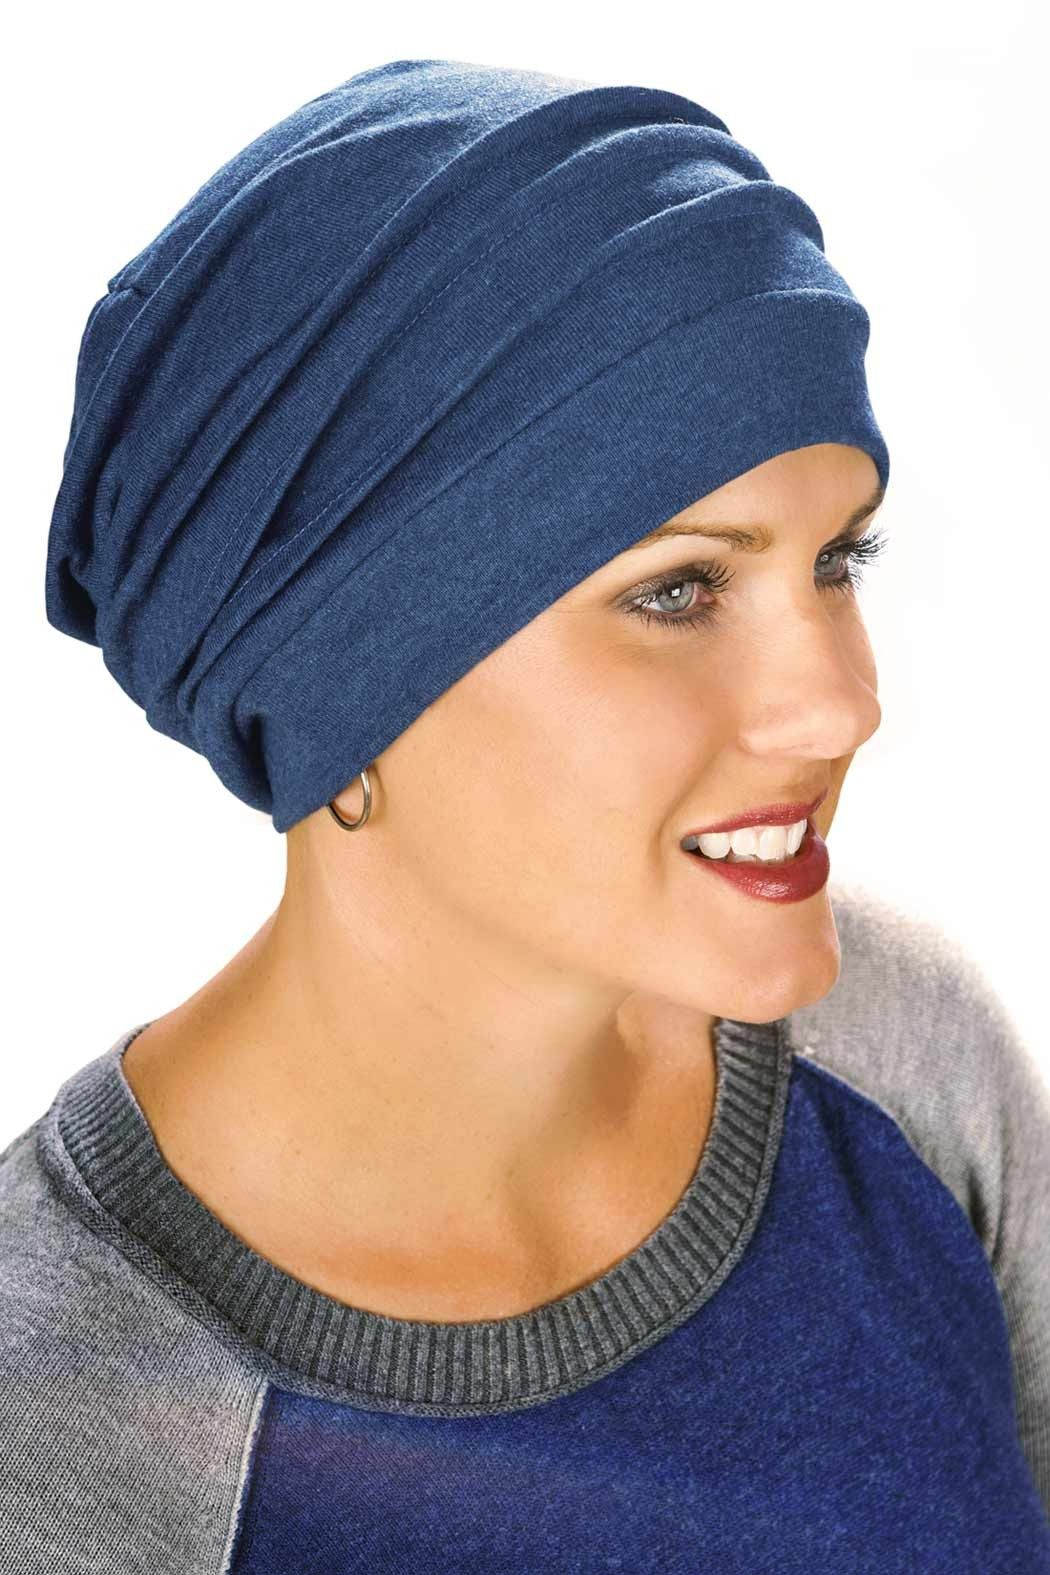 Slouchy Snood Hat | 100% Cotton Slouch Hat for Women #chemohat ...